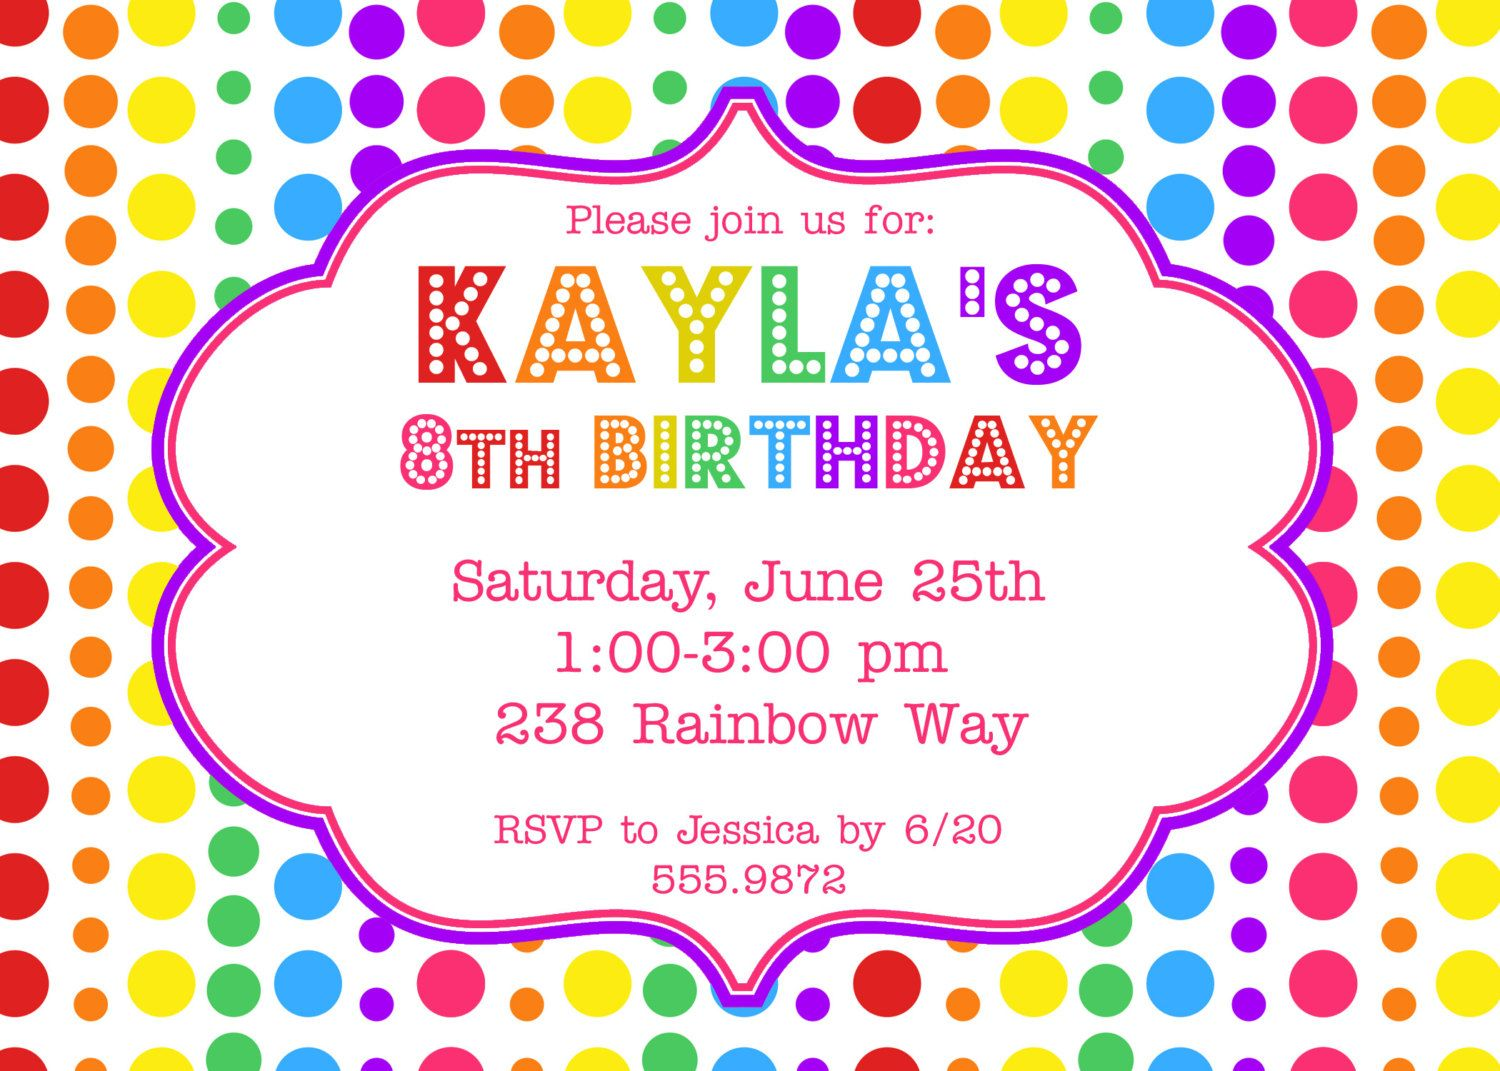 The party invitations online templates designs more httpwww the party invitations online templates designs more httpsilverlininginvitations monicamarmolfo Choice Image